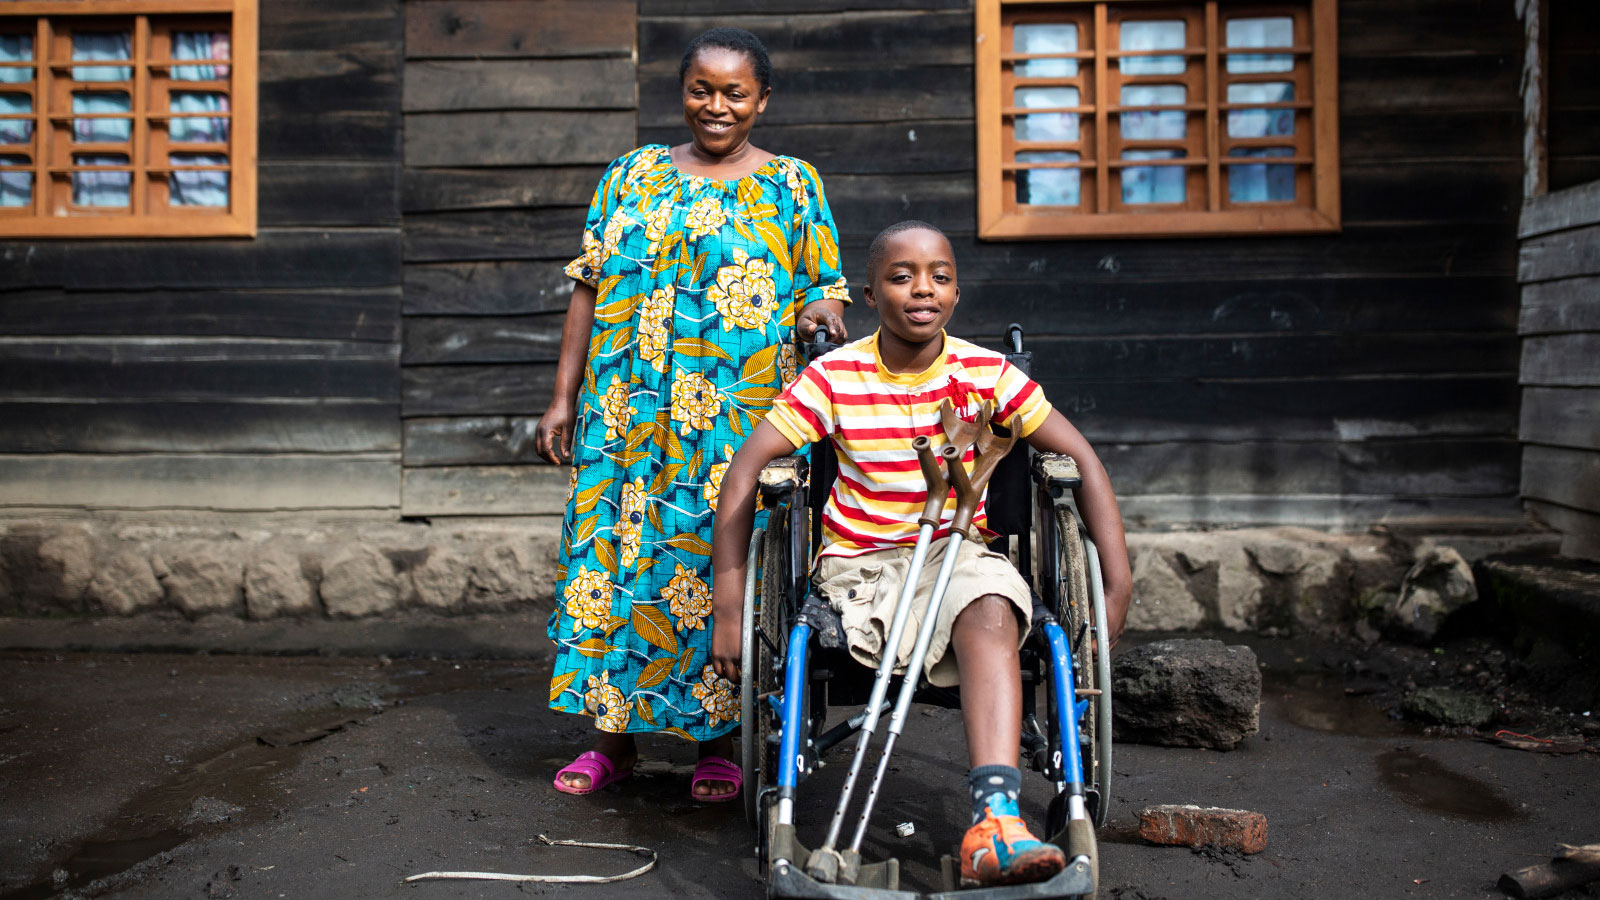 Philemon-smiles-in-his-wheelchair-next-to-his-mother-who-is-standing-next-to-him-in-the-DRC